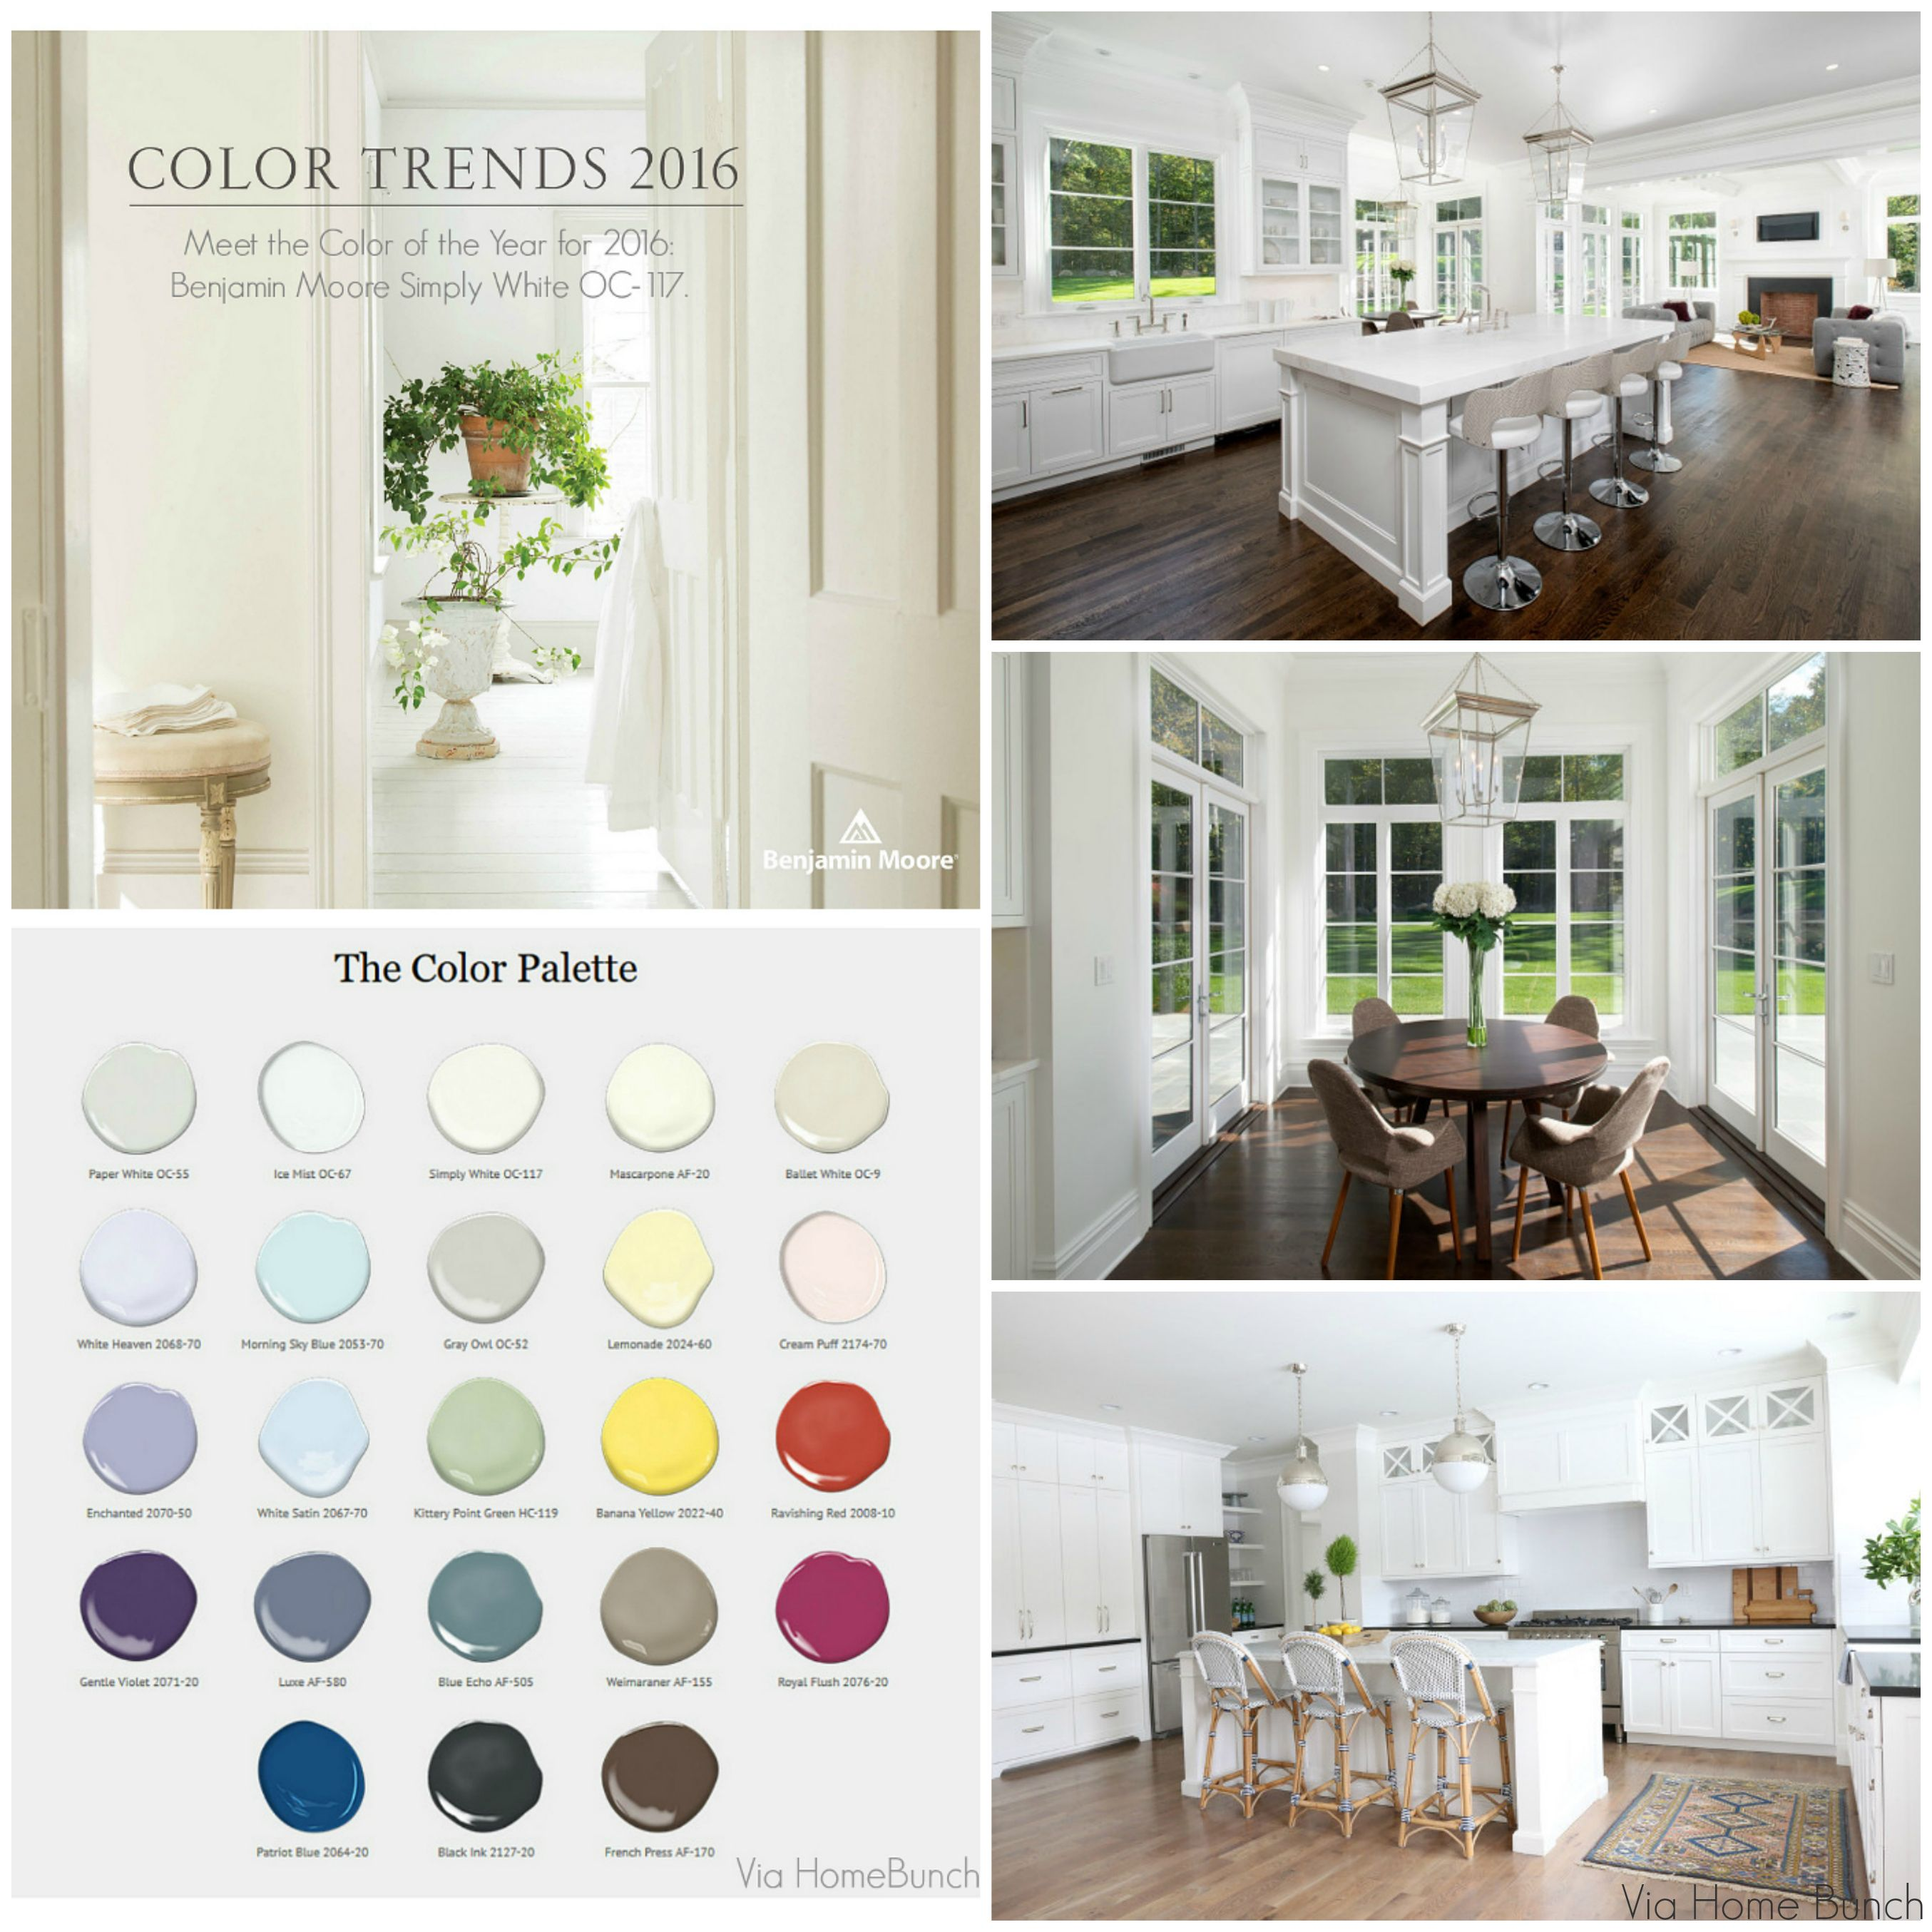 Interior Colors For Small Homes: Benjamin Moore Color Of The Year 2016: Simply White, Color